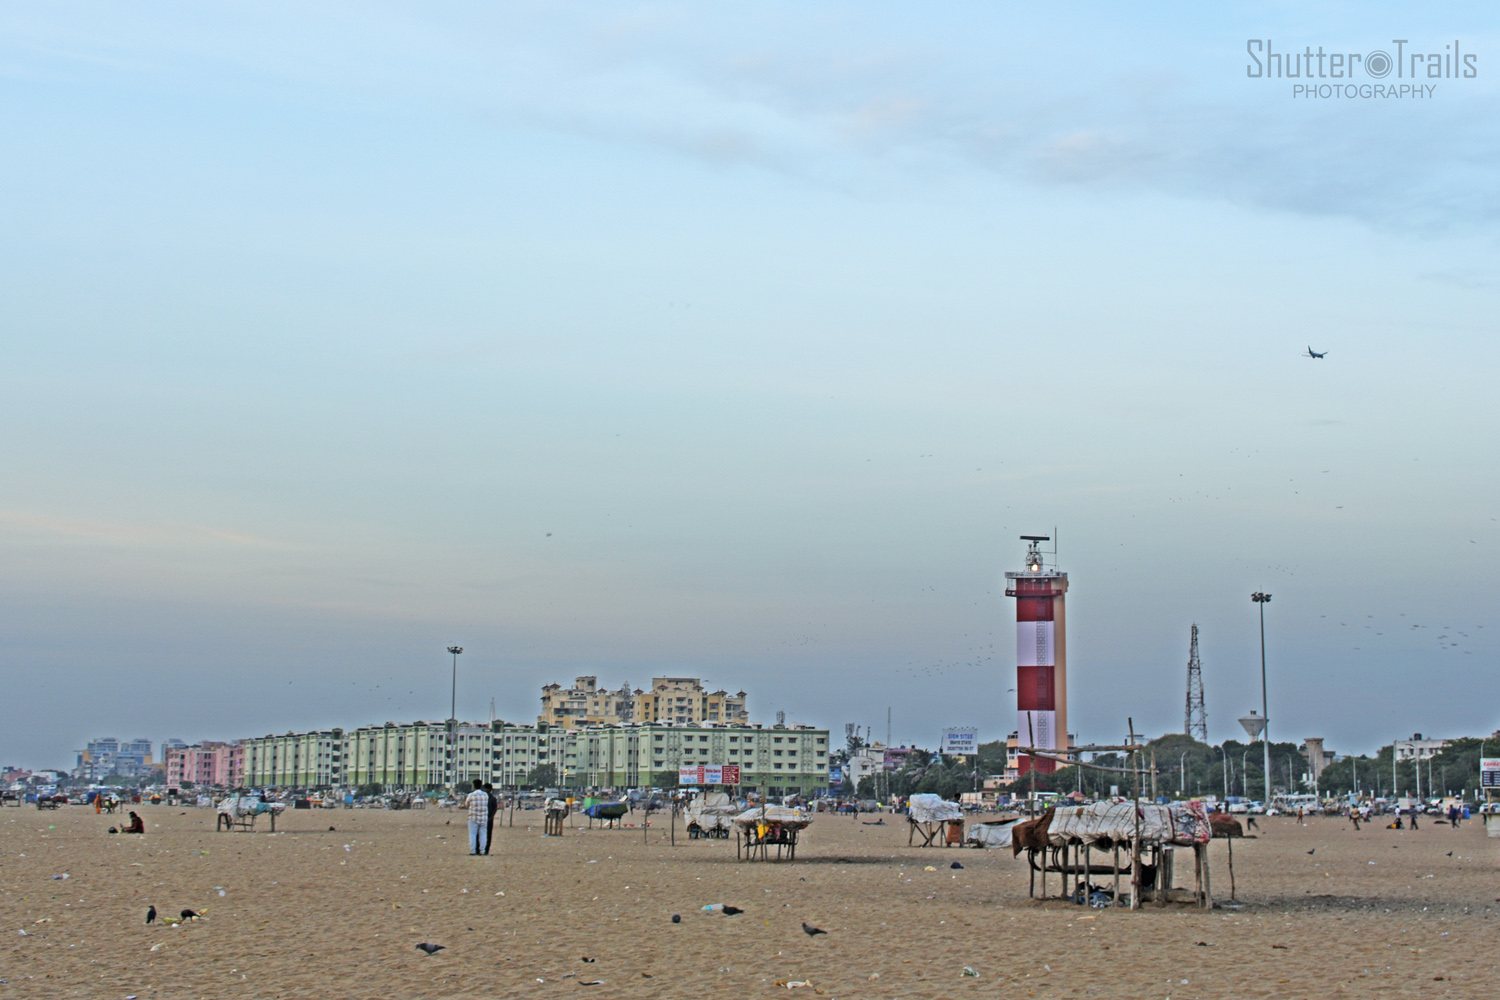 Morning Chennai - Marina Light House